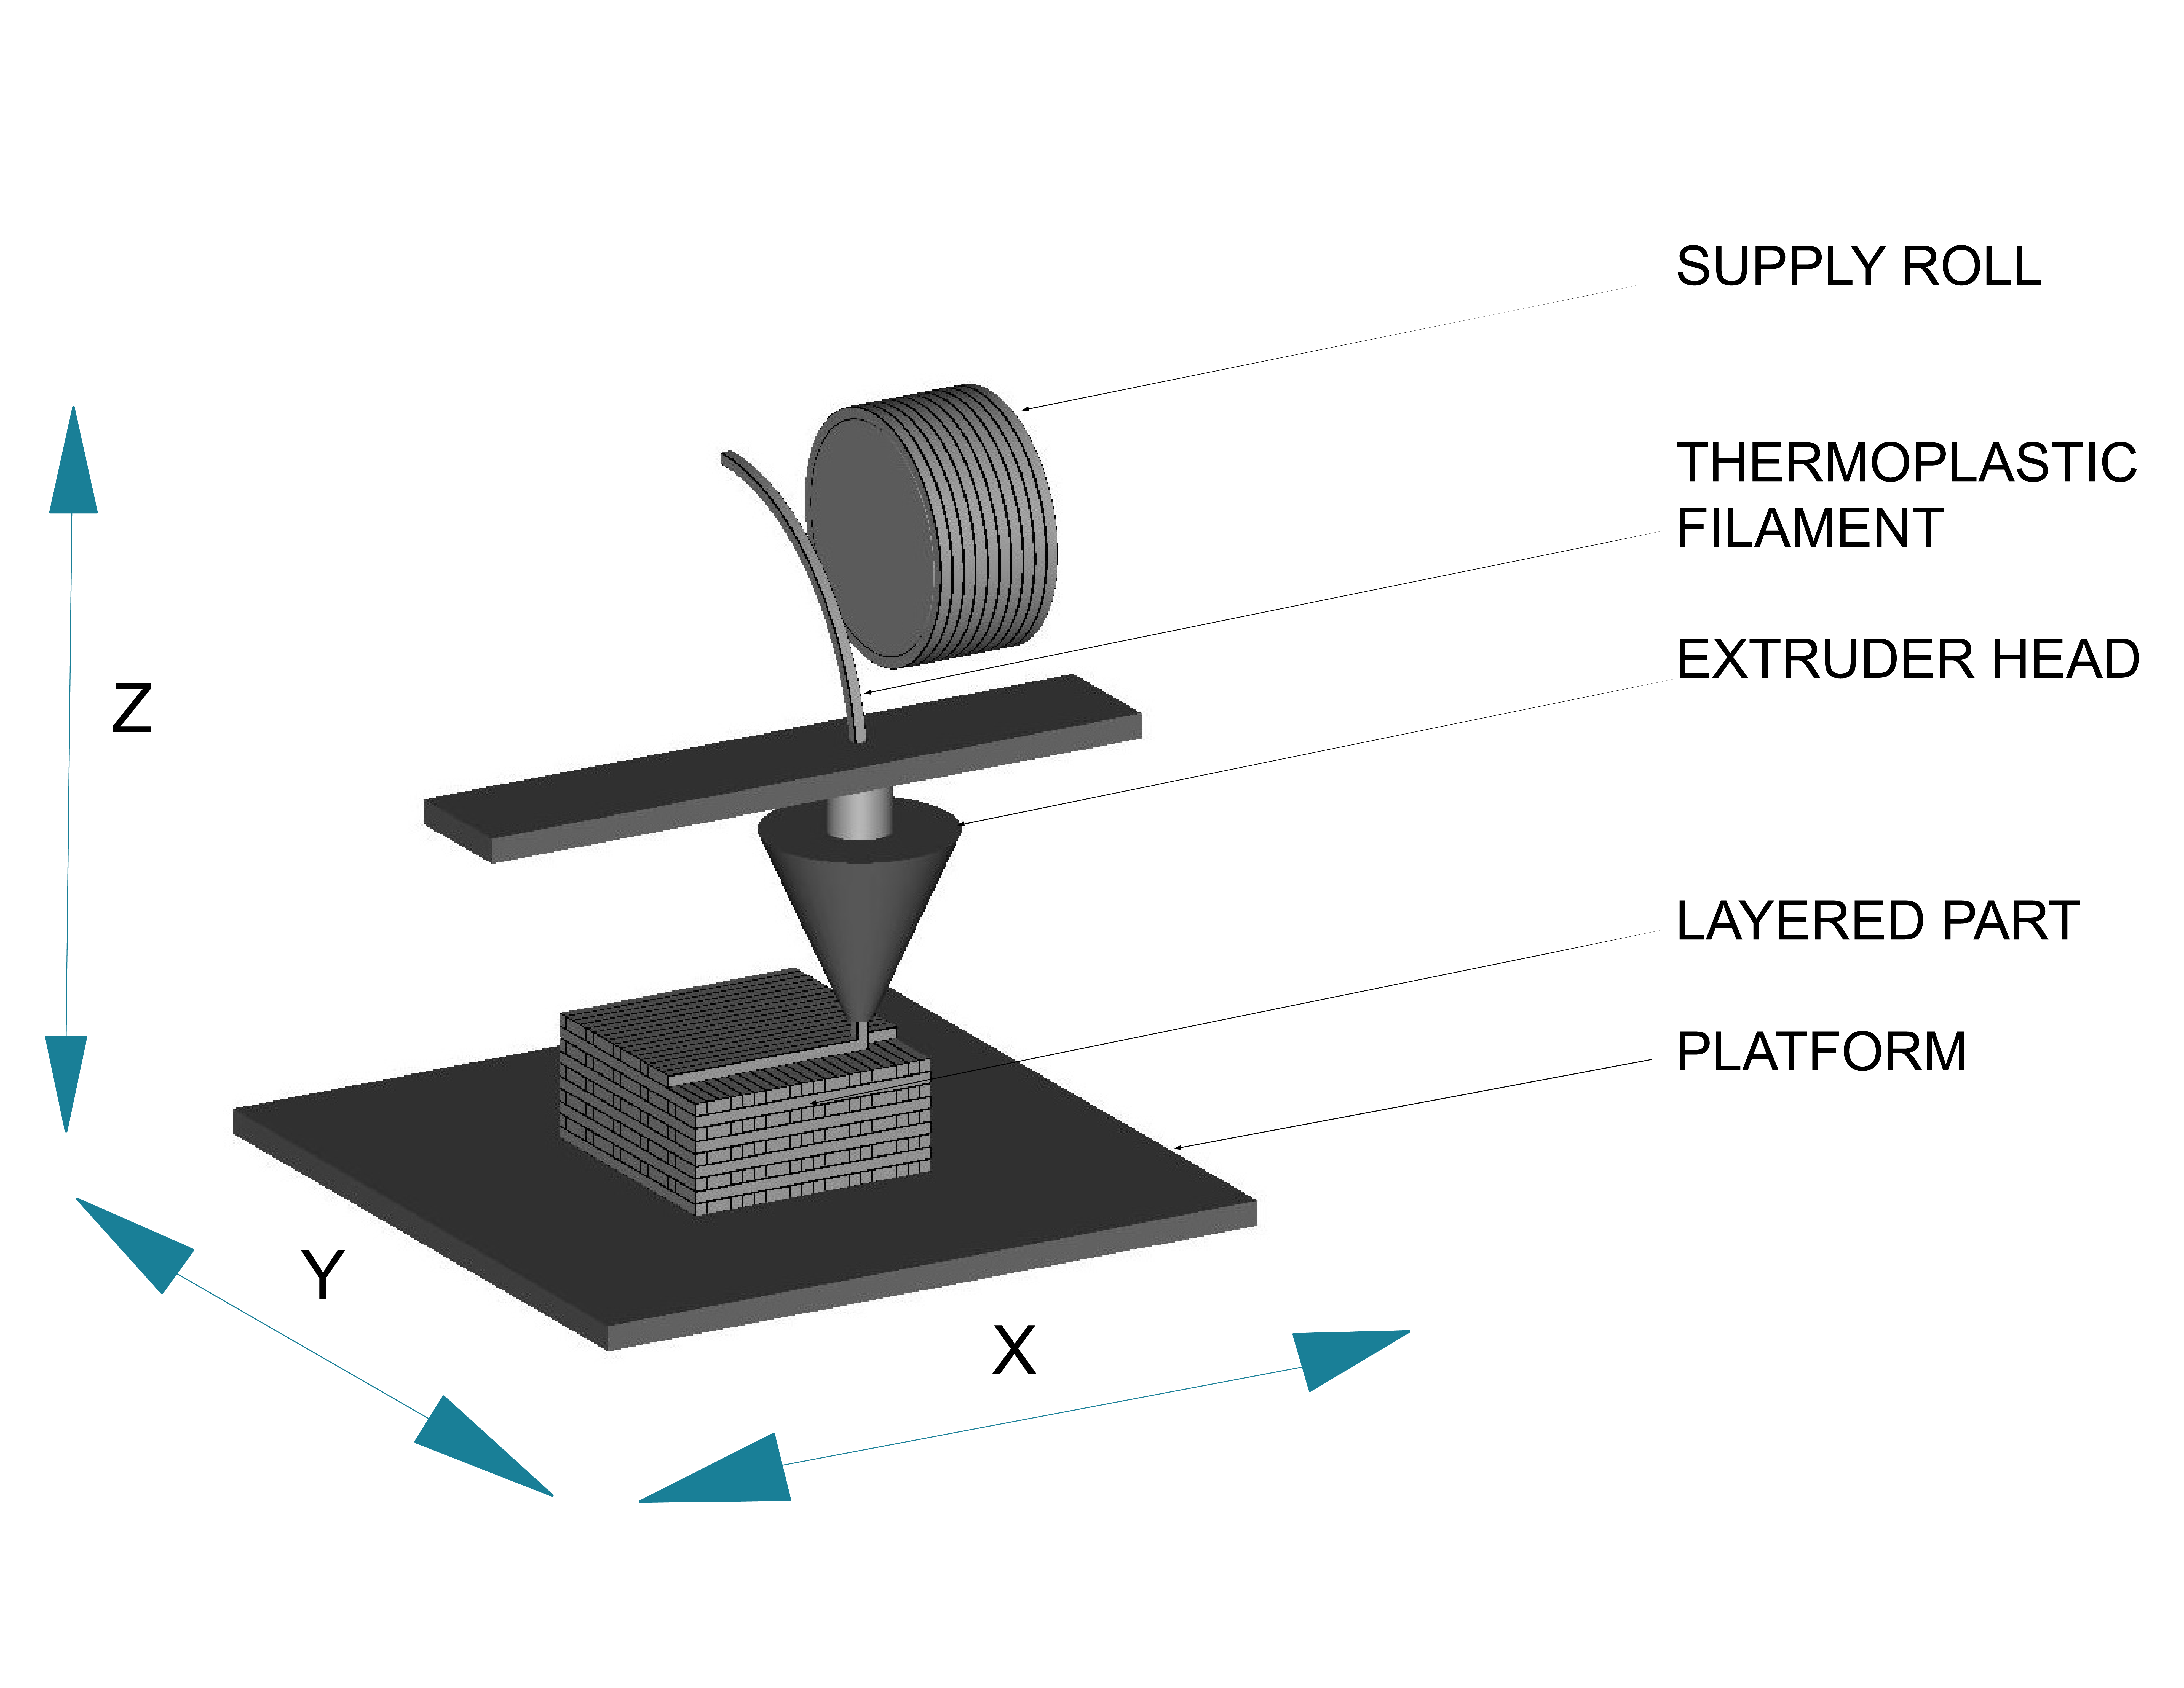 3-D Material Extrusion Image